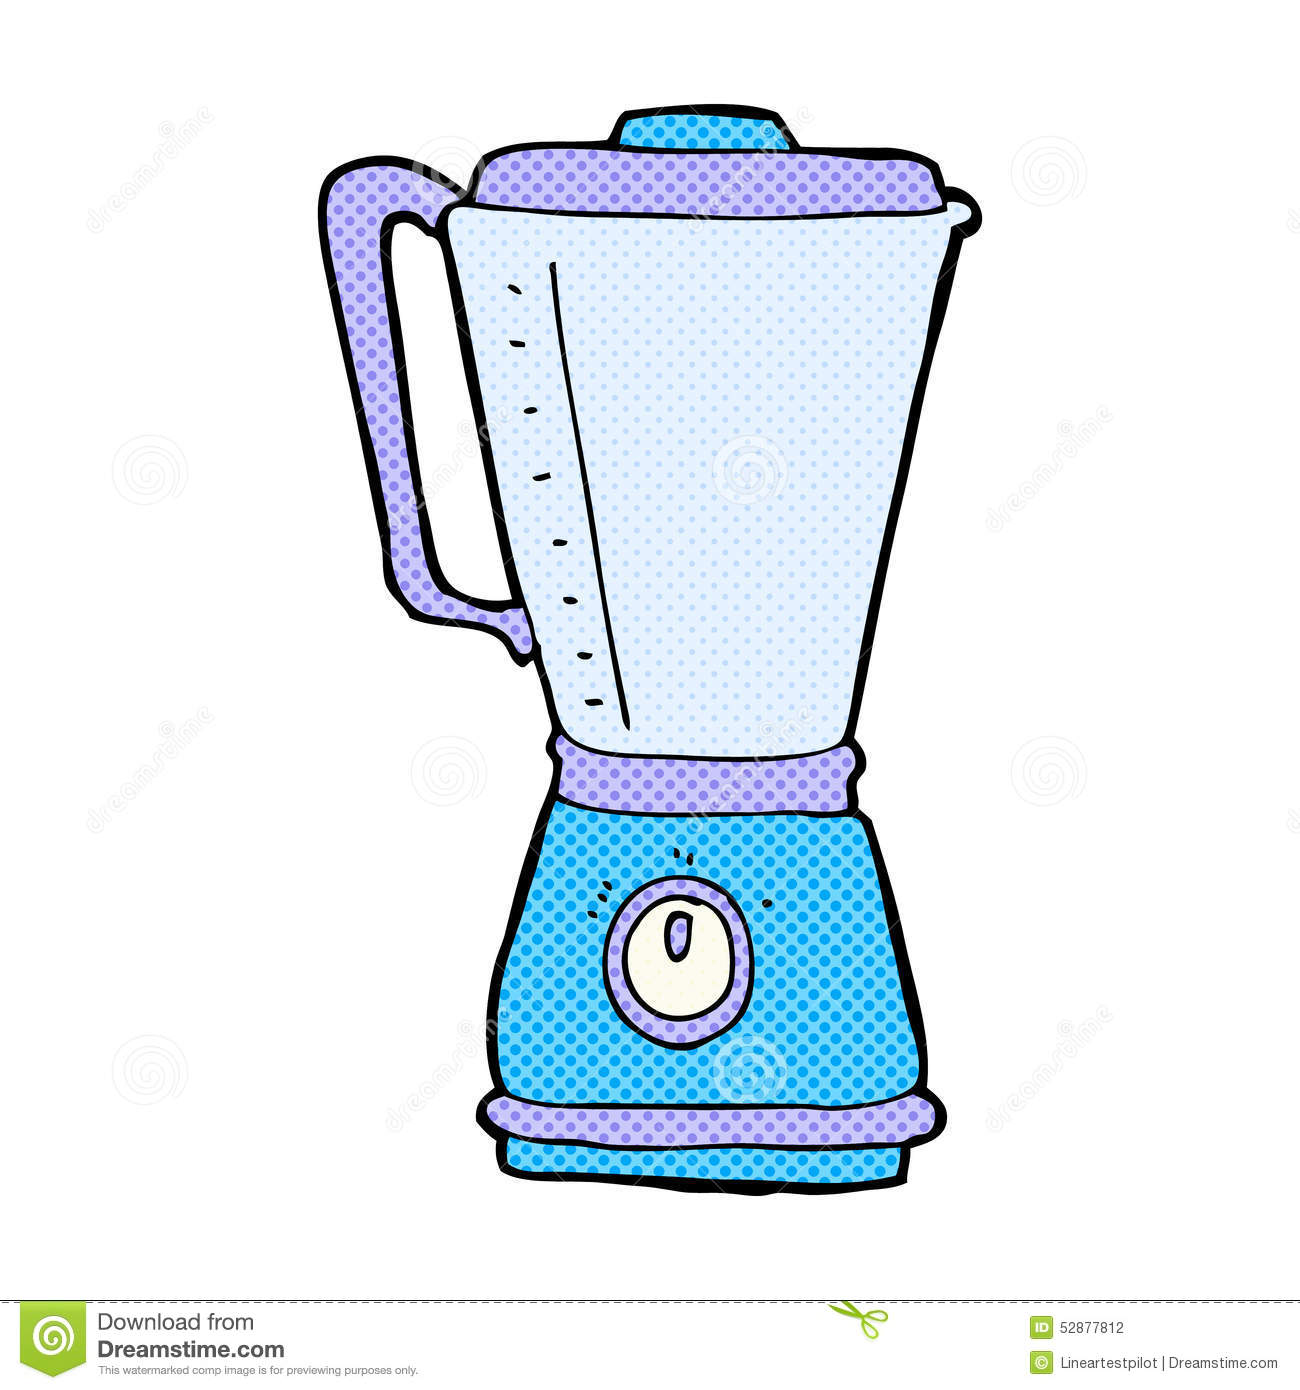 Clip Art Of Blender ~ Comic cartoon kitchen blender stock illustration image